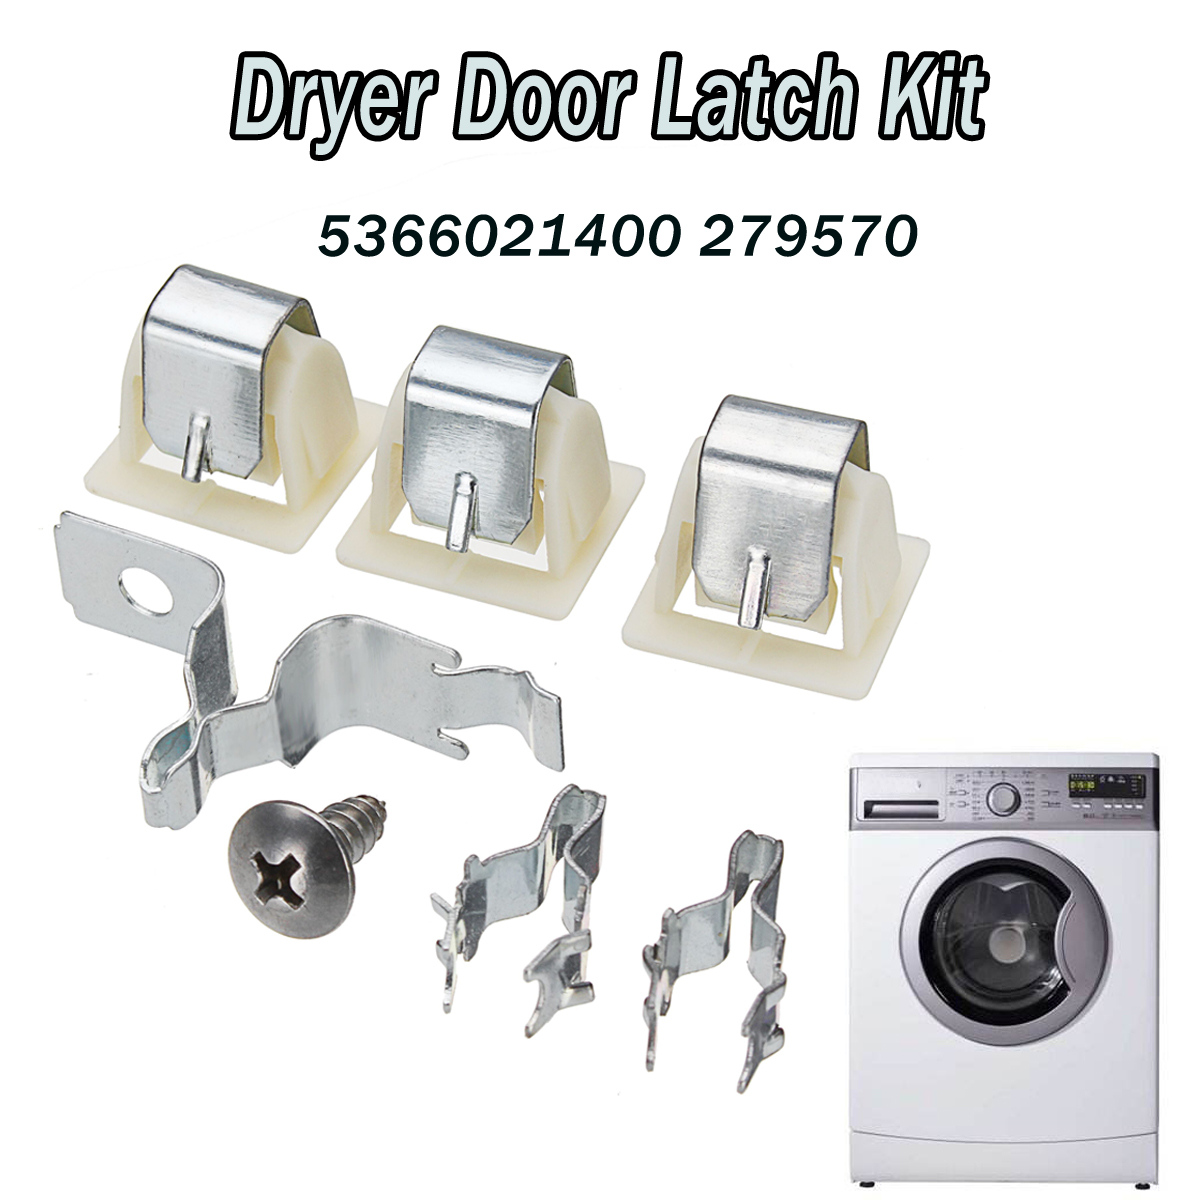 dryer door latch kit part for electrolux frigidaire kenmore 5366021400 279570 in clothes dryer parts from home appliances on aliexpress com alibaba group [ 1200 x 1200 Pixel ]